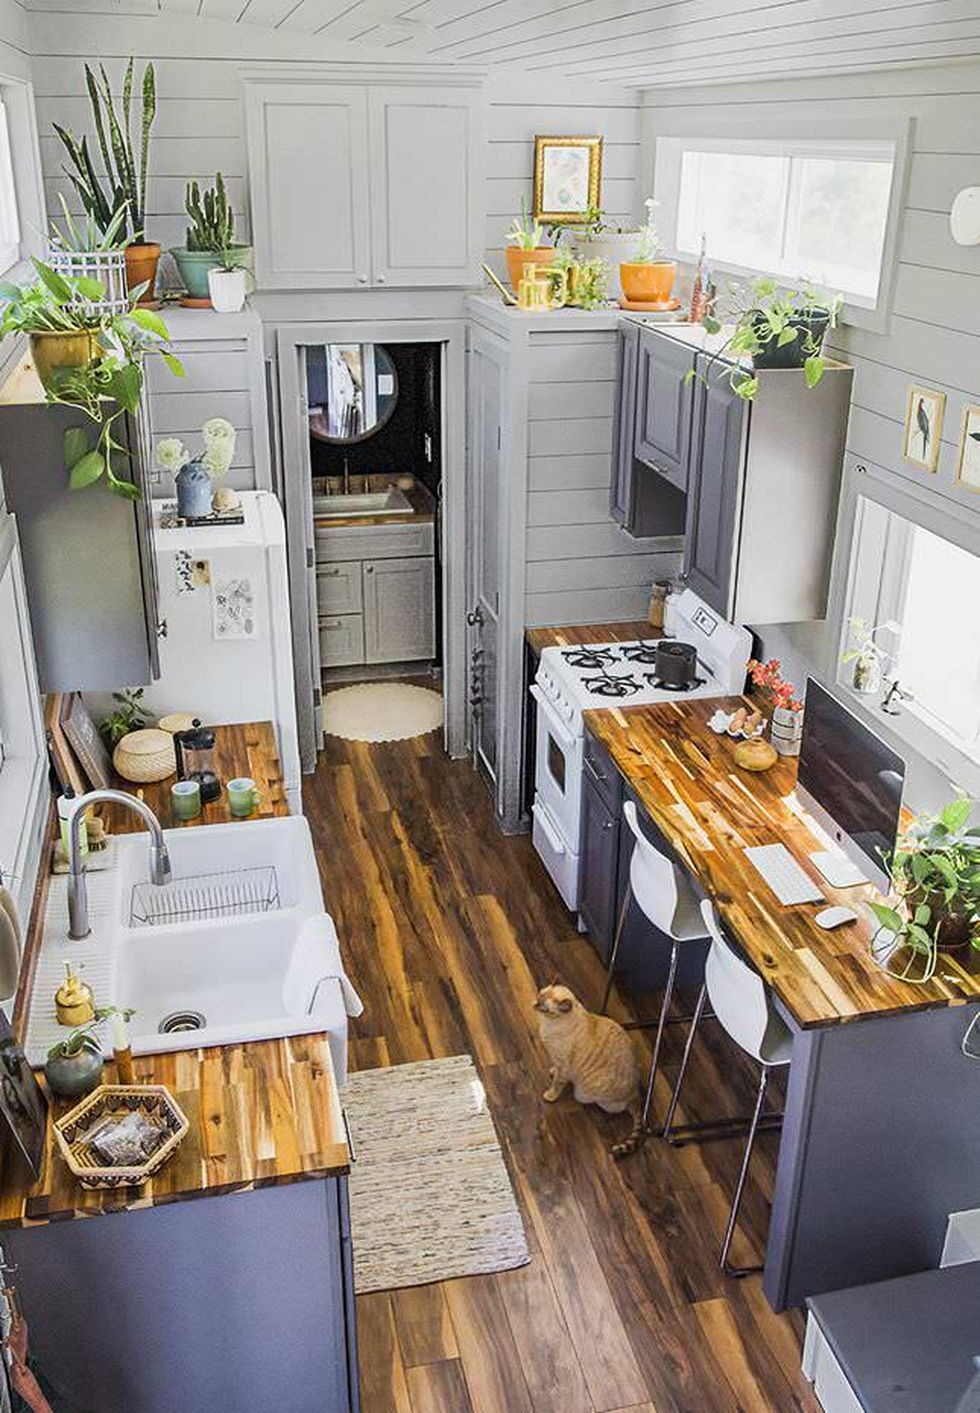 Inspiring Tiny Kitchen Design Ideas For Small House Tiny House Design Tiny House Living Home Design Plans